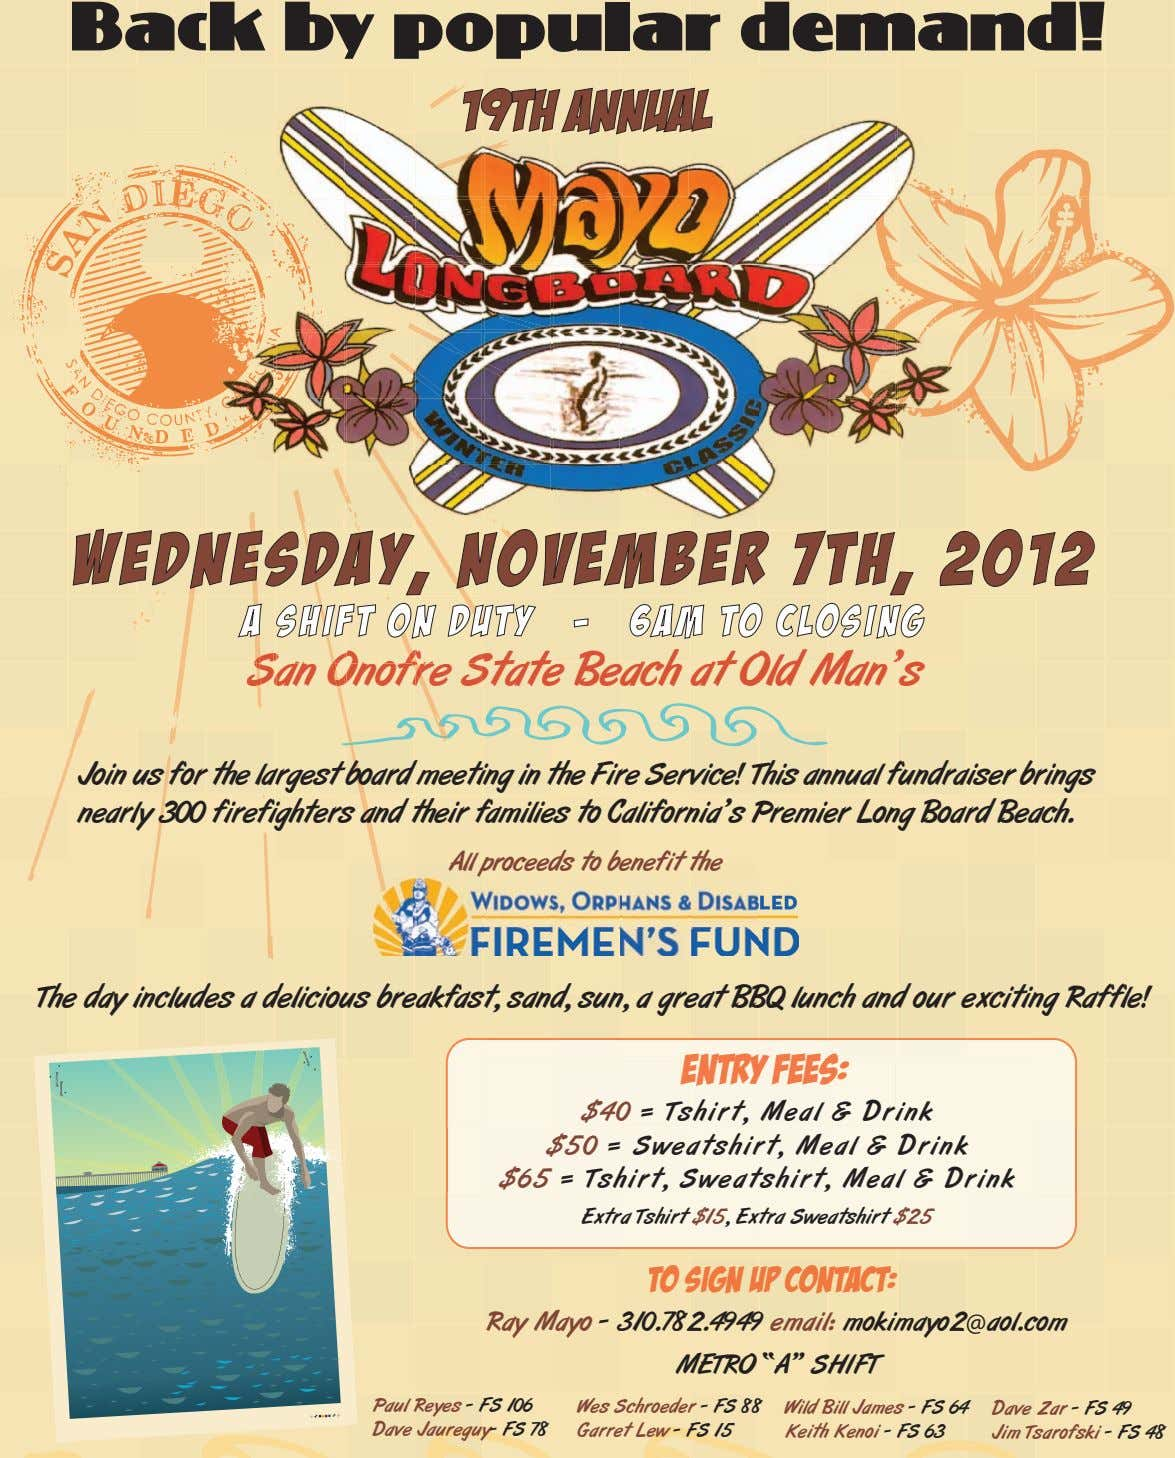 Back by popular demand! 19th Annual WEDNESDAY, NOVEMBER 7TH, 2012 A SHIFT ON DUTY -